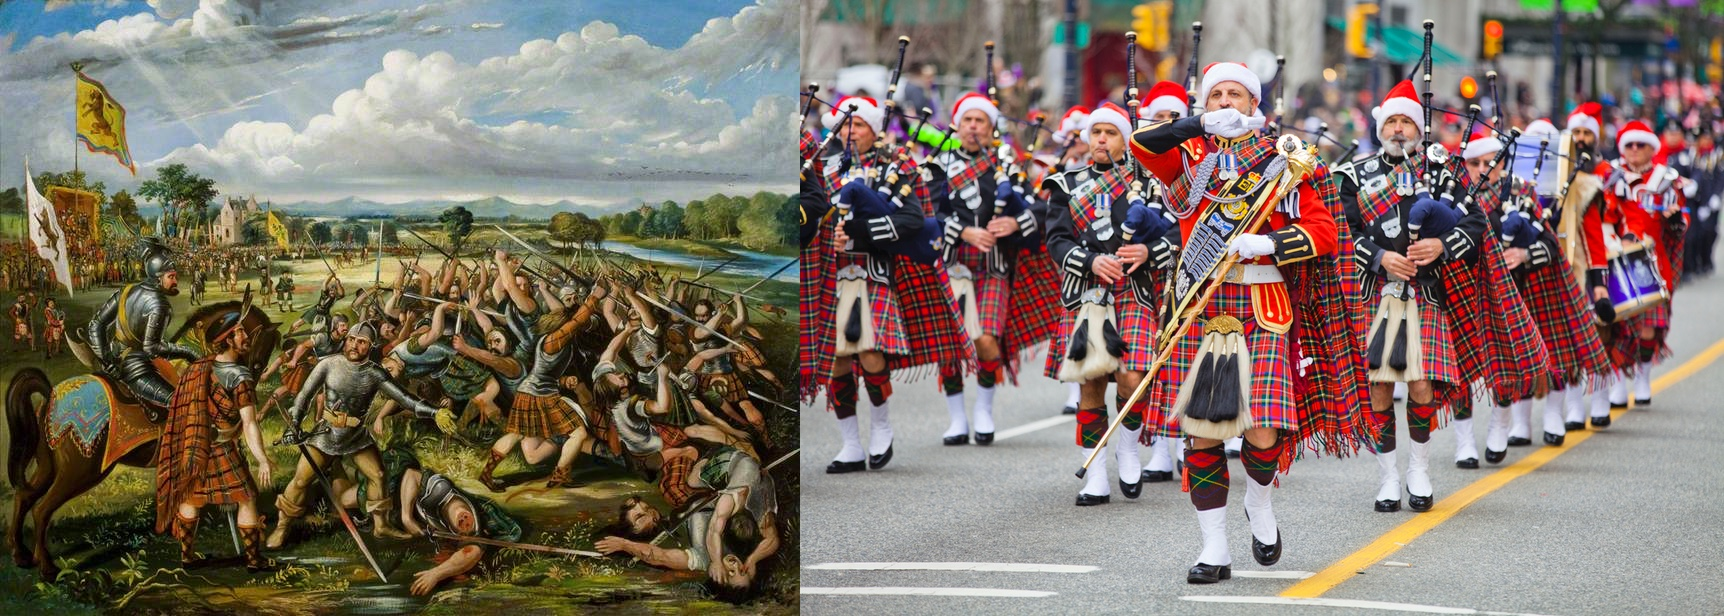 A painting of the Battle of the Clans in 1396 in Perth, Scotland, paired with a picture of marchers in kilts at the 2017 Santa Claus parade in Vancouver, Canada